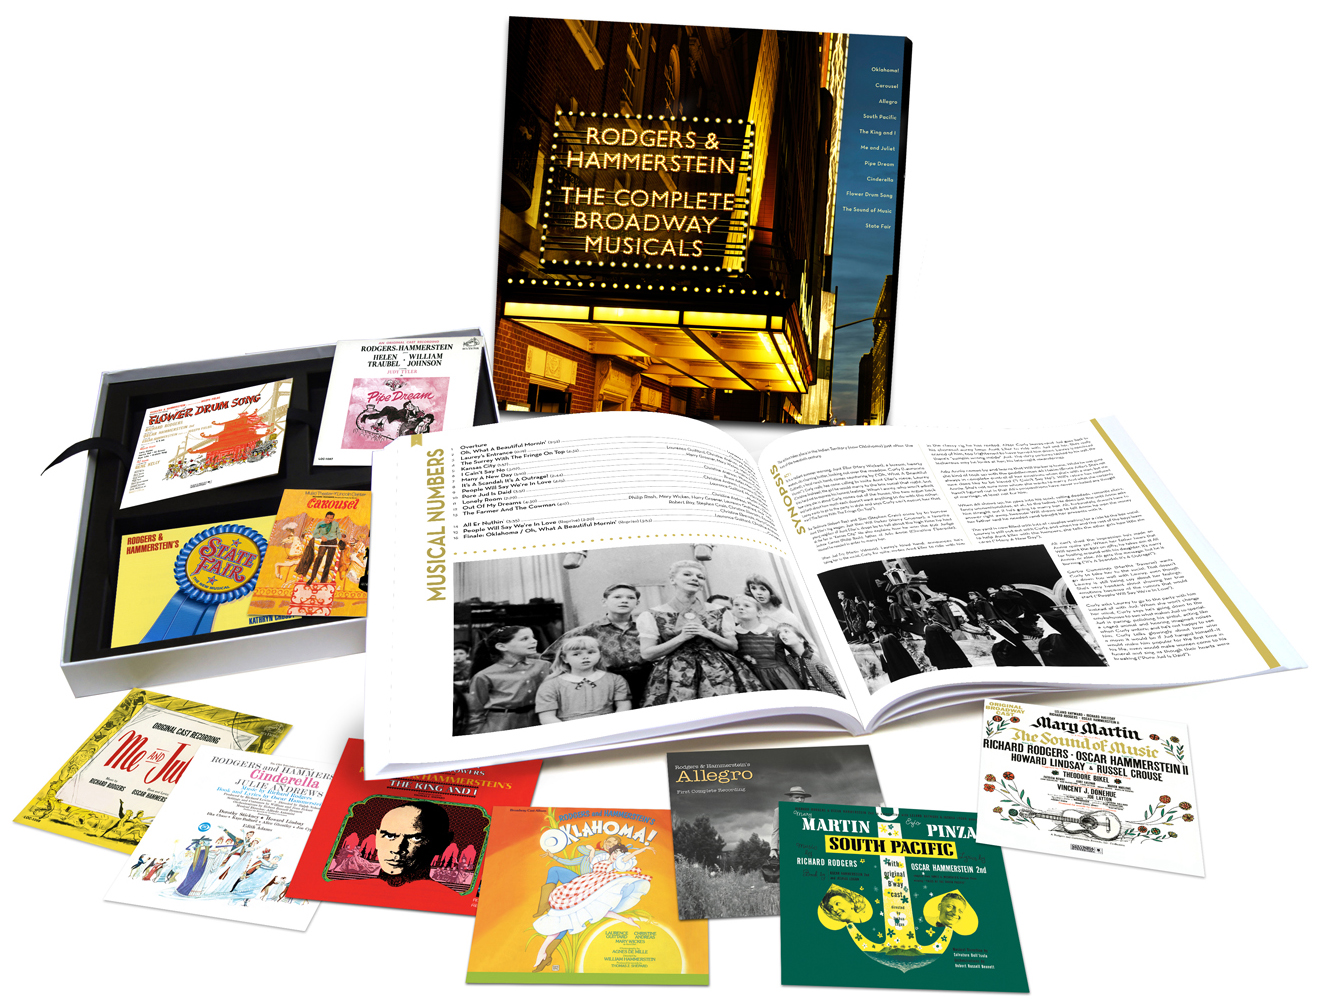 rodgers & hammerstein: the complete broadway musicals box set